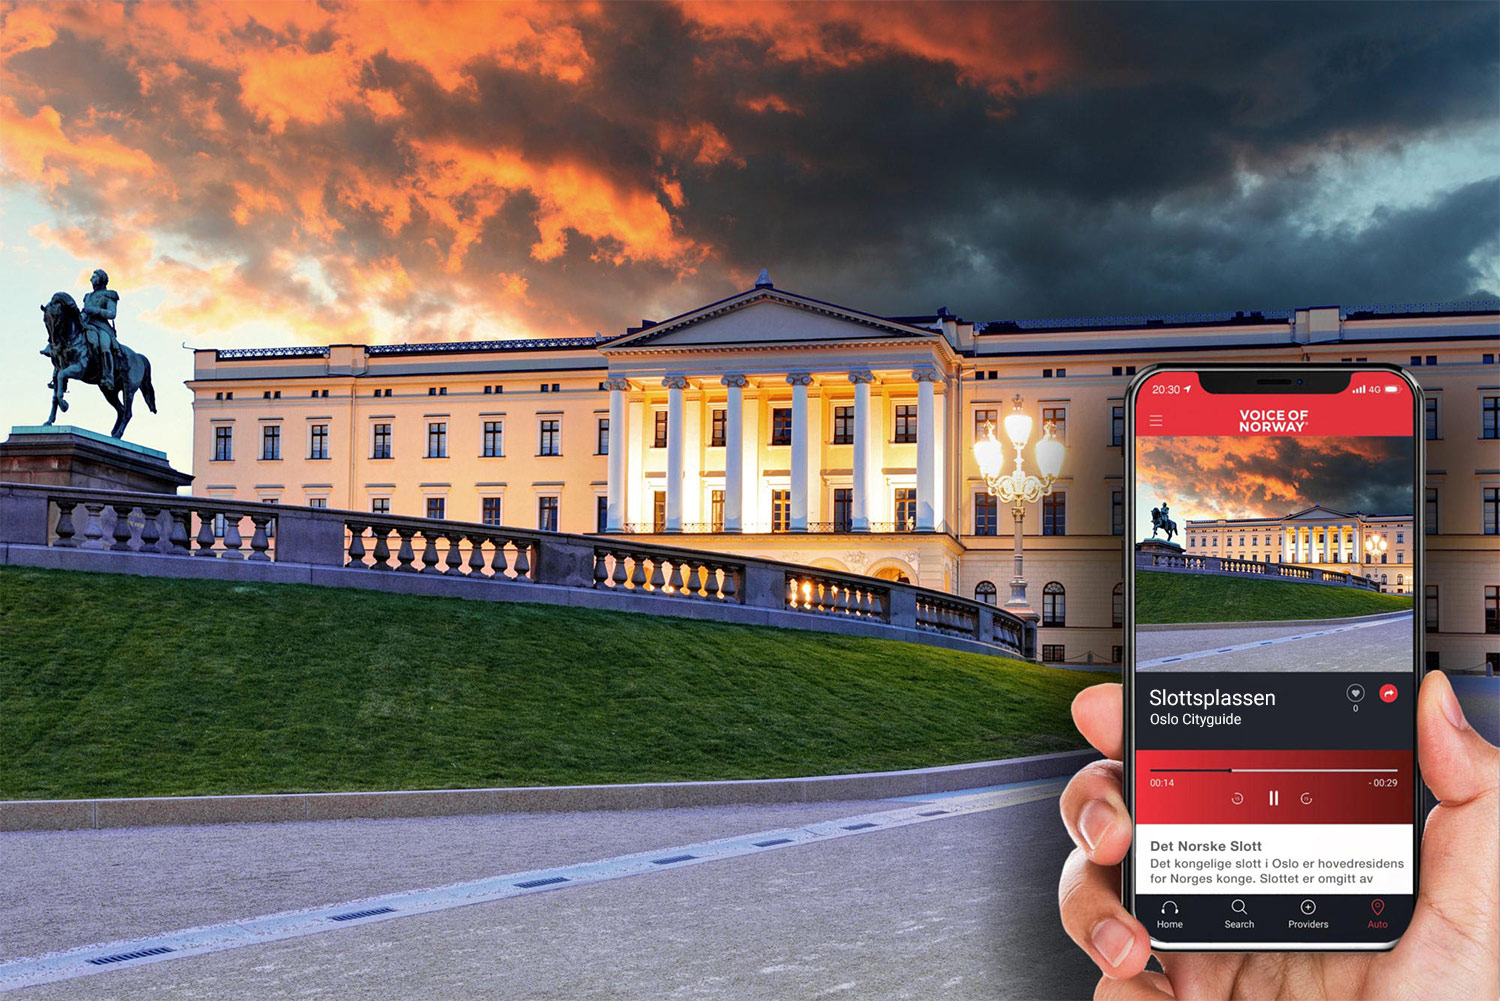 Slottet-audioguide-lydguide-reiseguide-app-voice-of-norway-turistapp-norge-reiseapp-Oslo